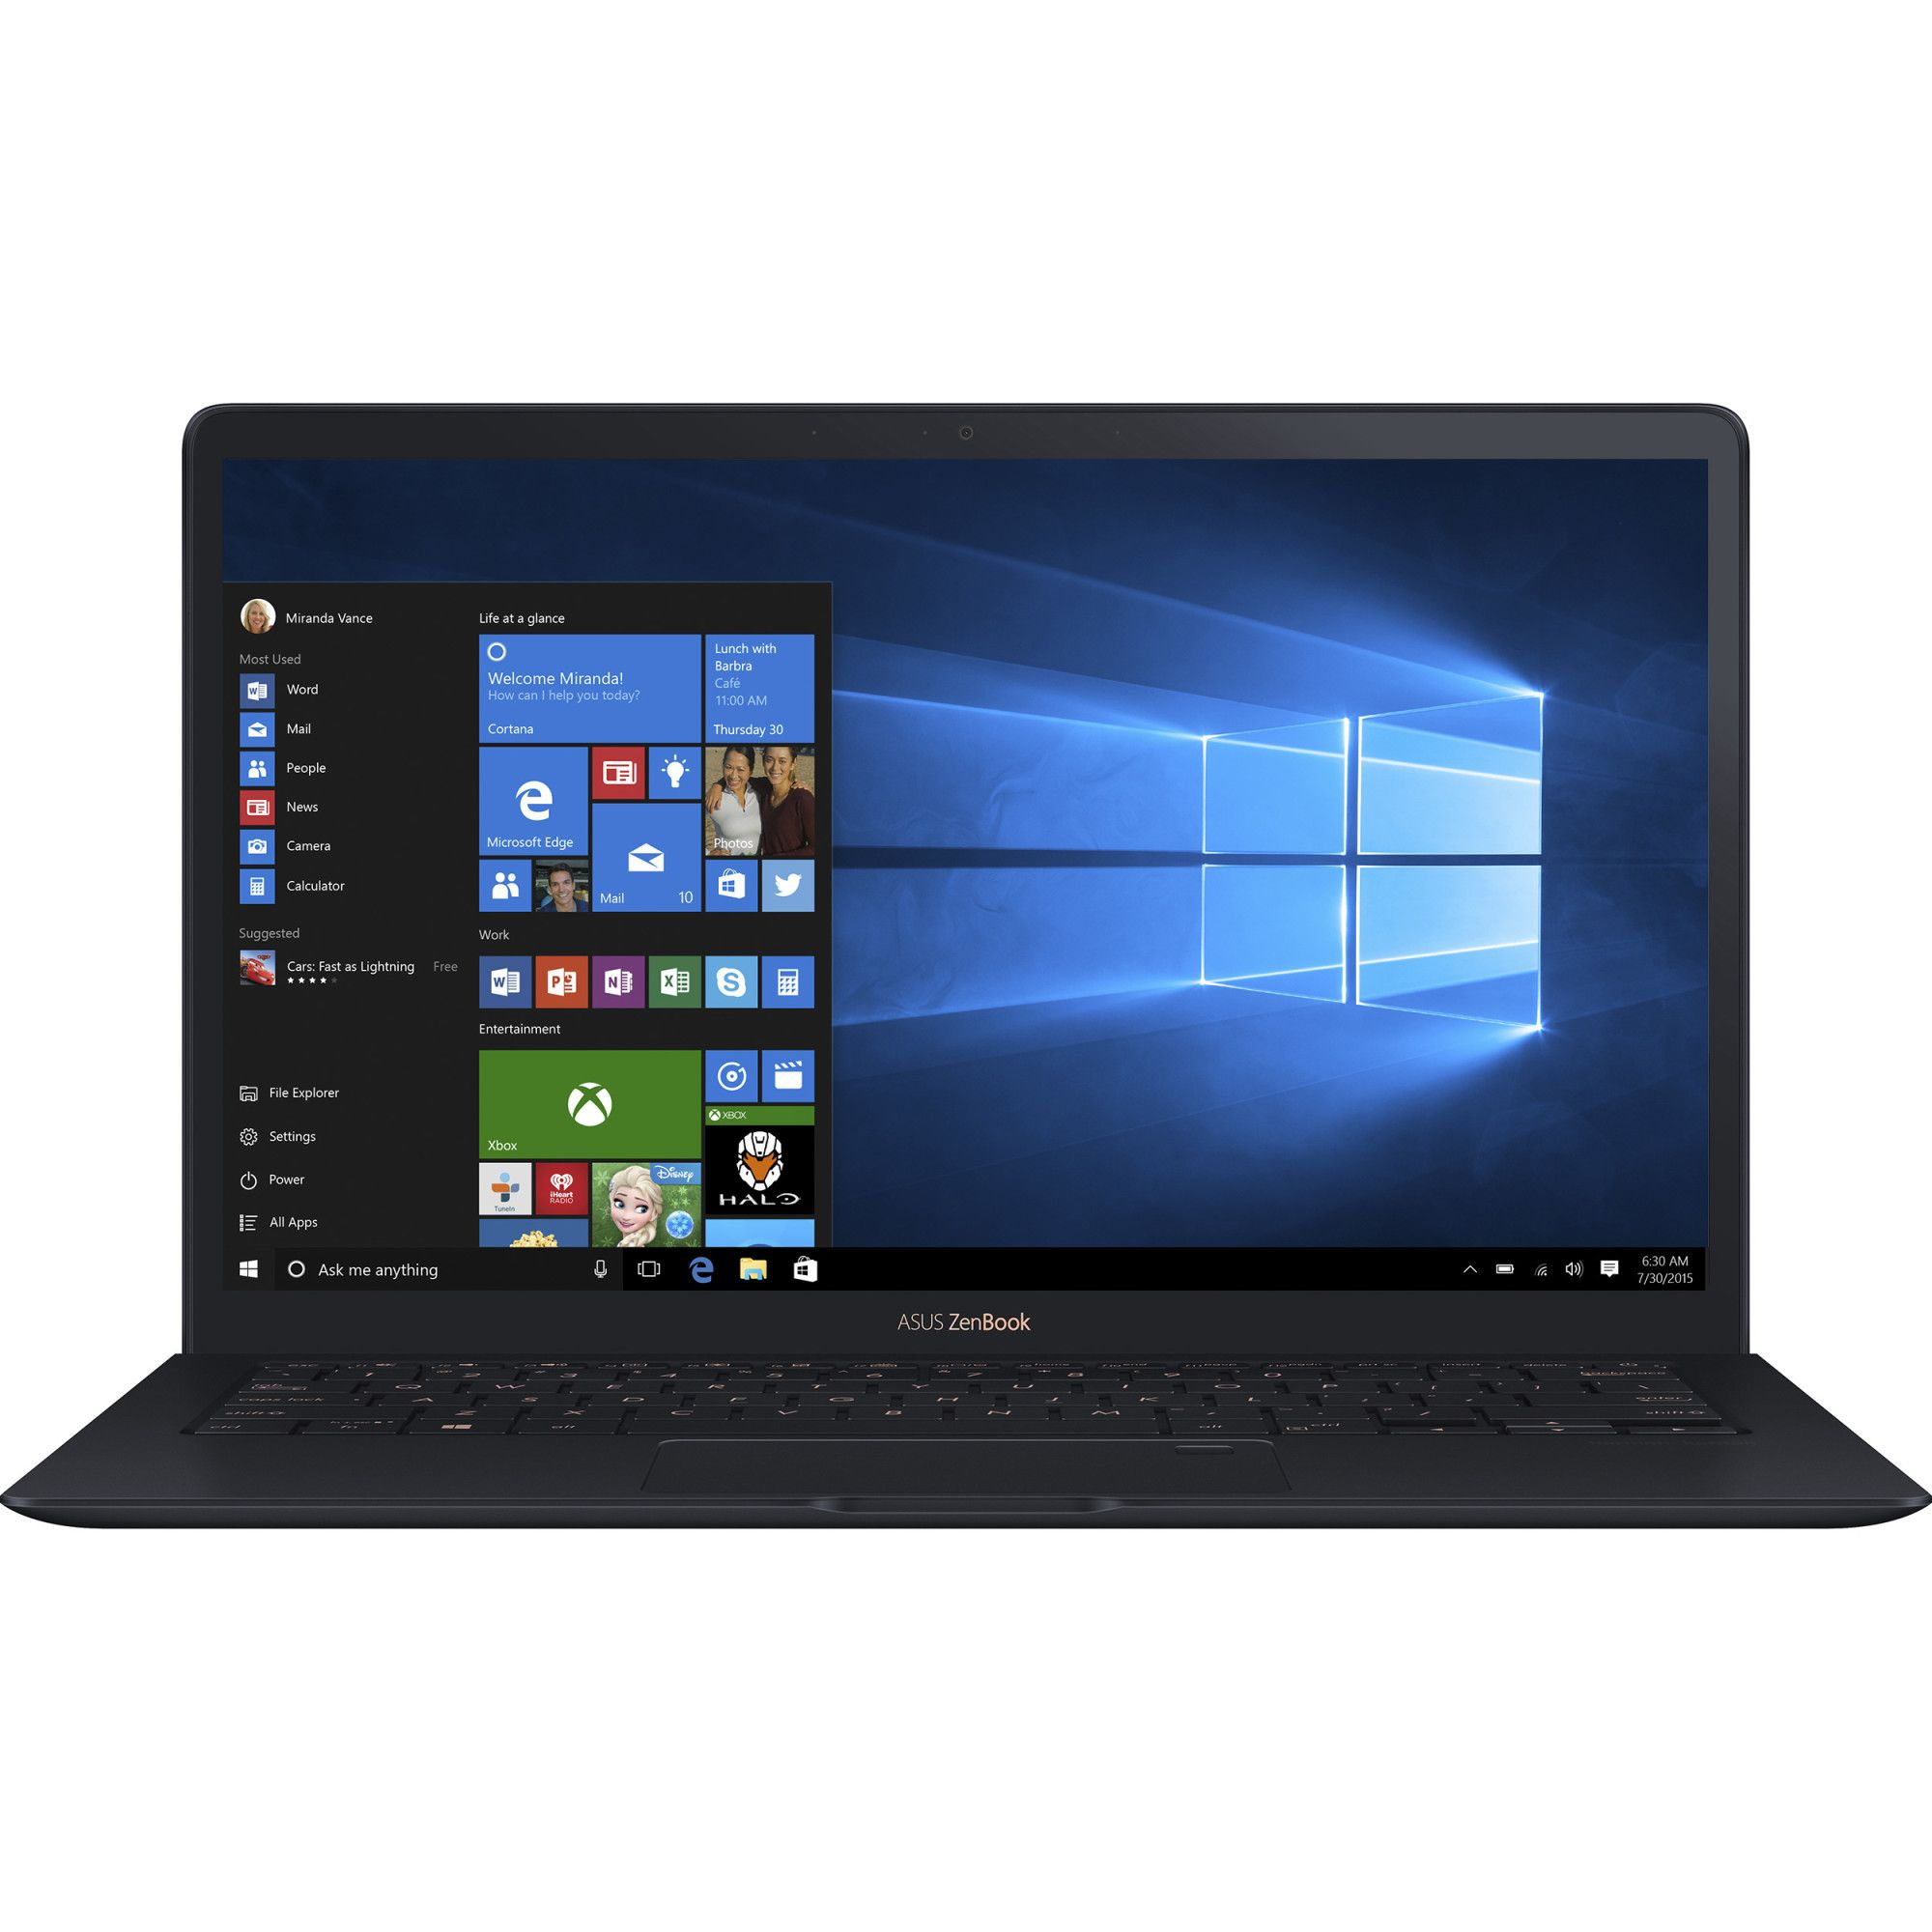 Ultrabook Asus ZenBook S UX391UA 13.3 Full HD Intel Core i7-8550U RAM 8GB SSD 256GB Windows 10 Albastru